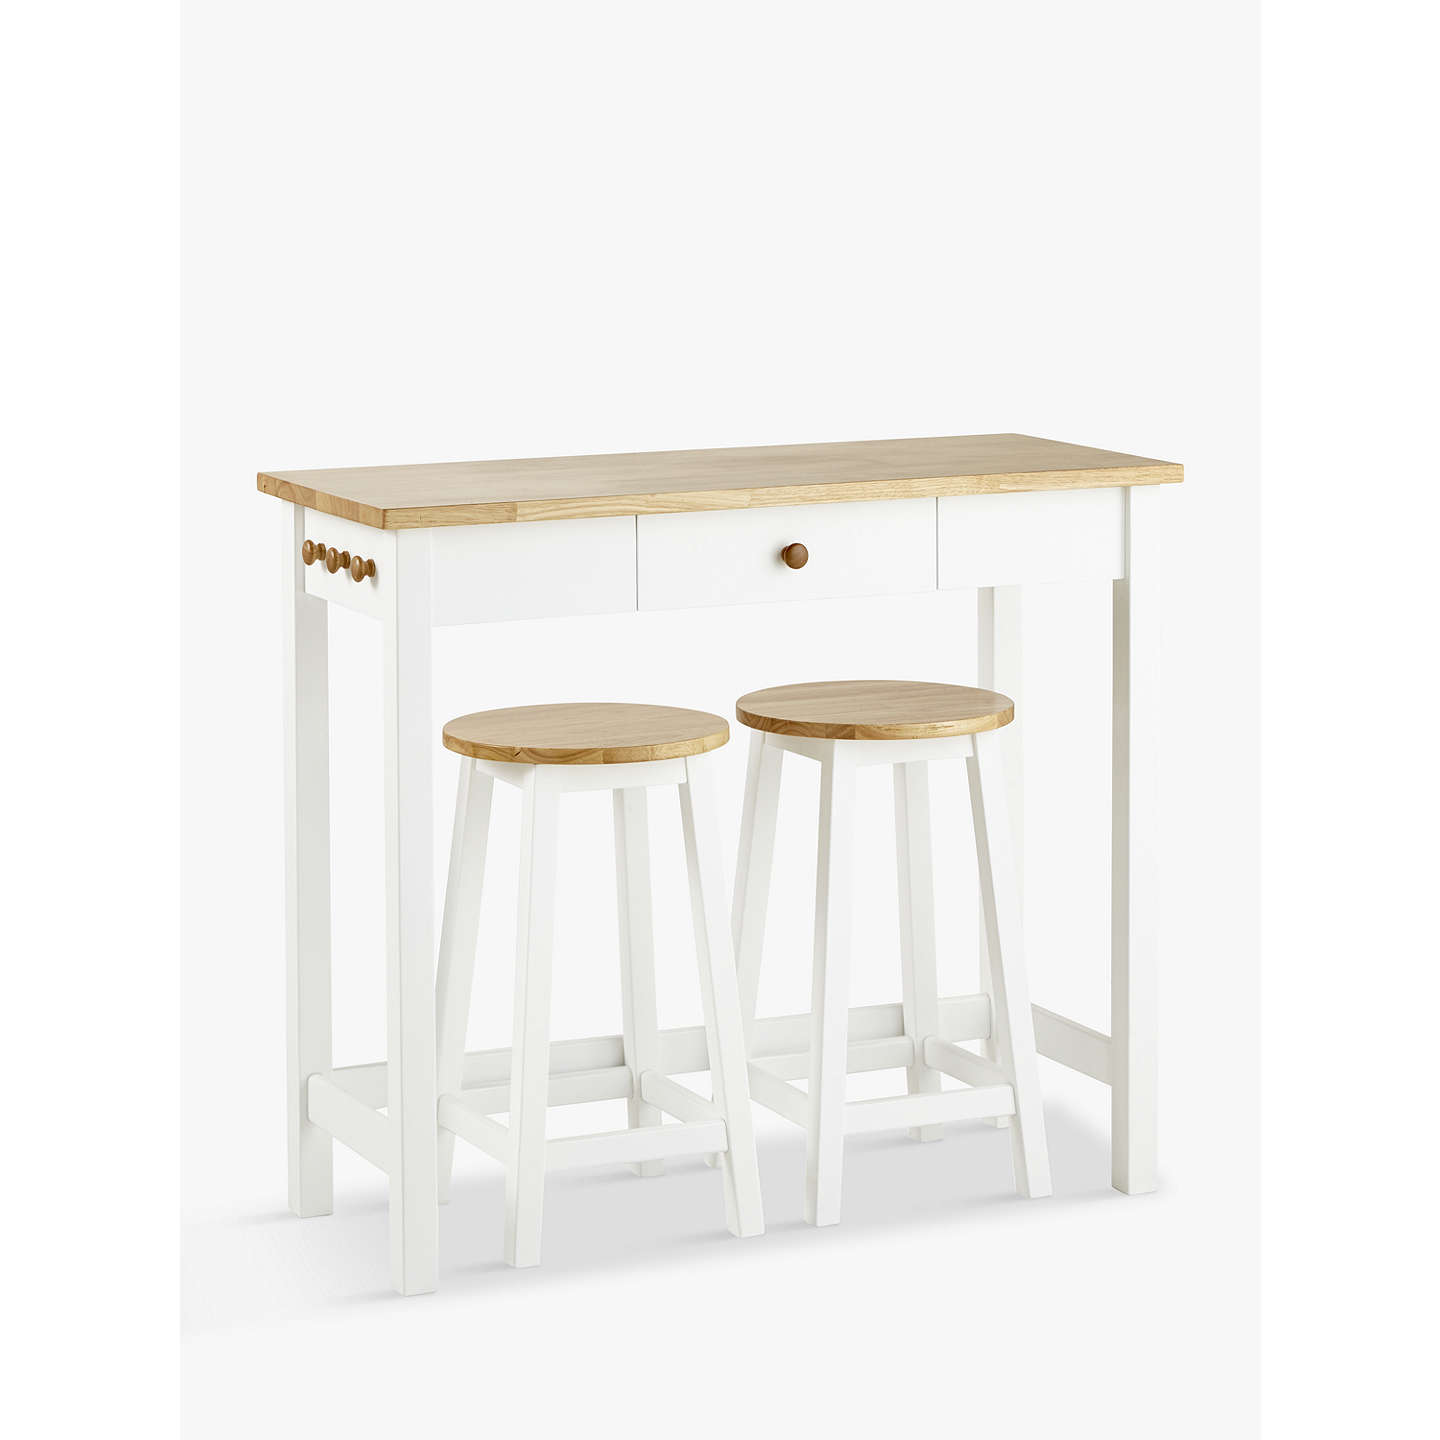 White Bar Table And Stools: John Lewis Adler Bar Table & Stools, White/Oak At John Lewis